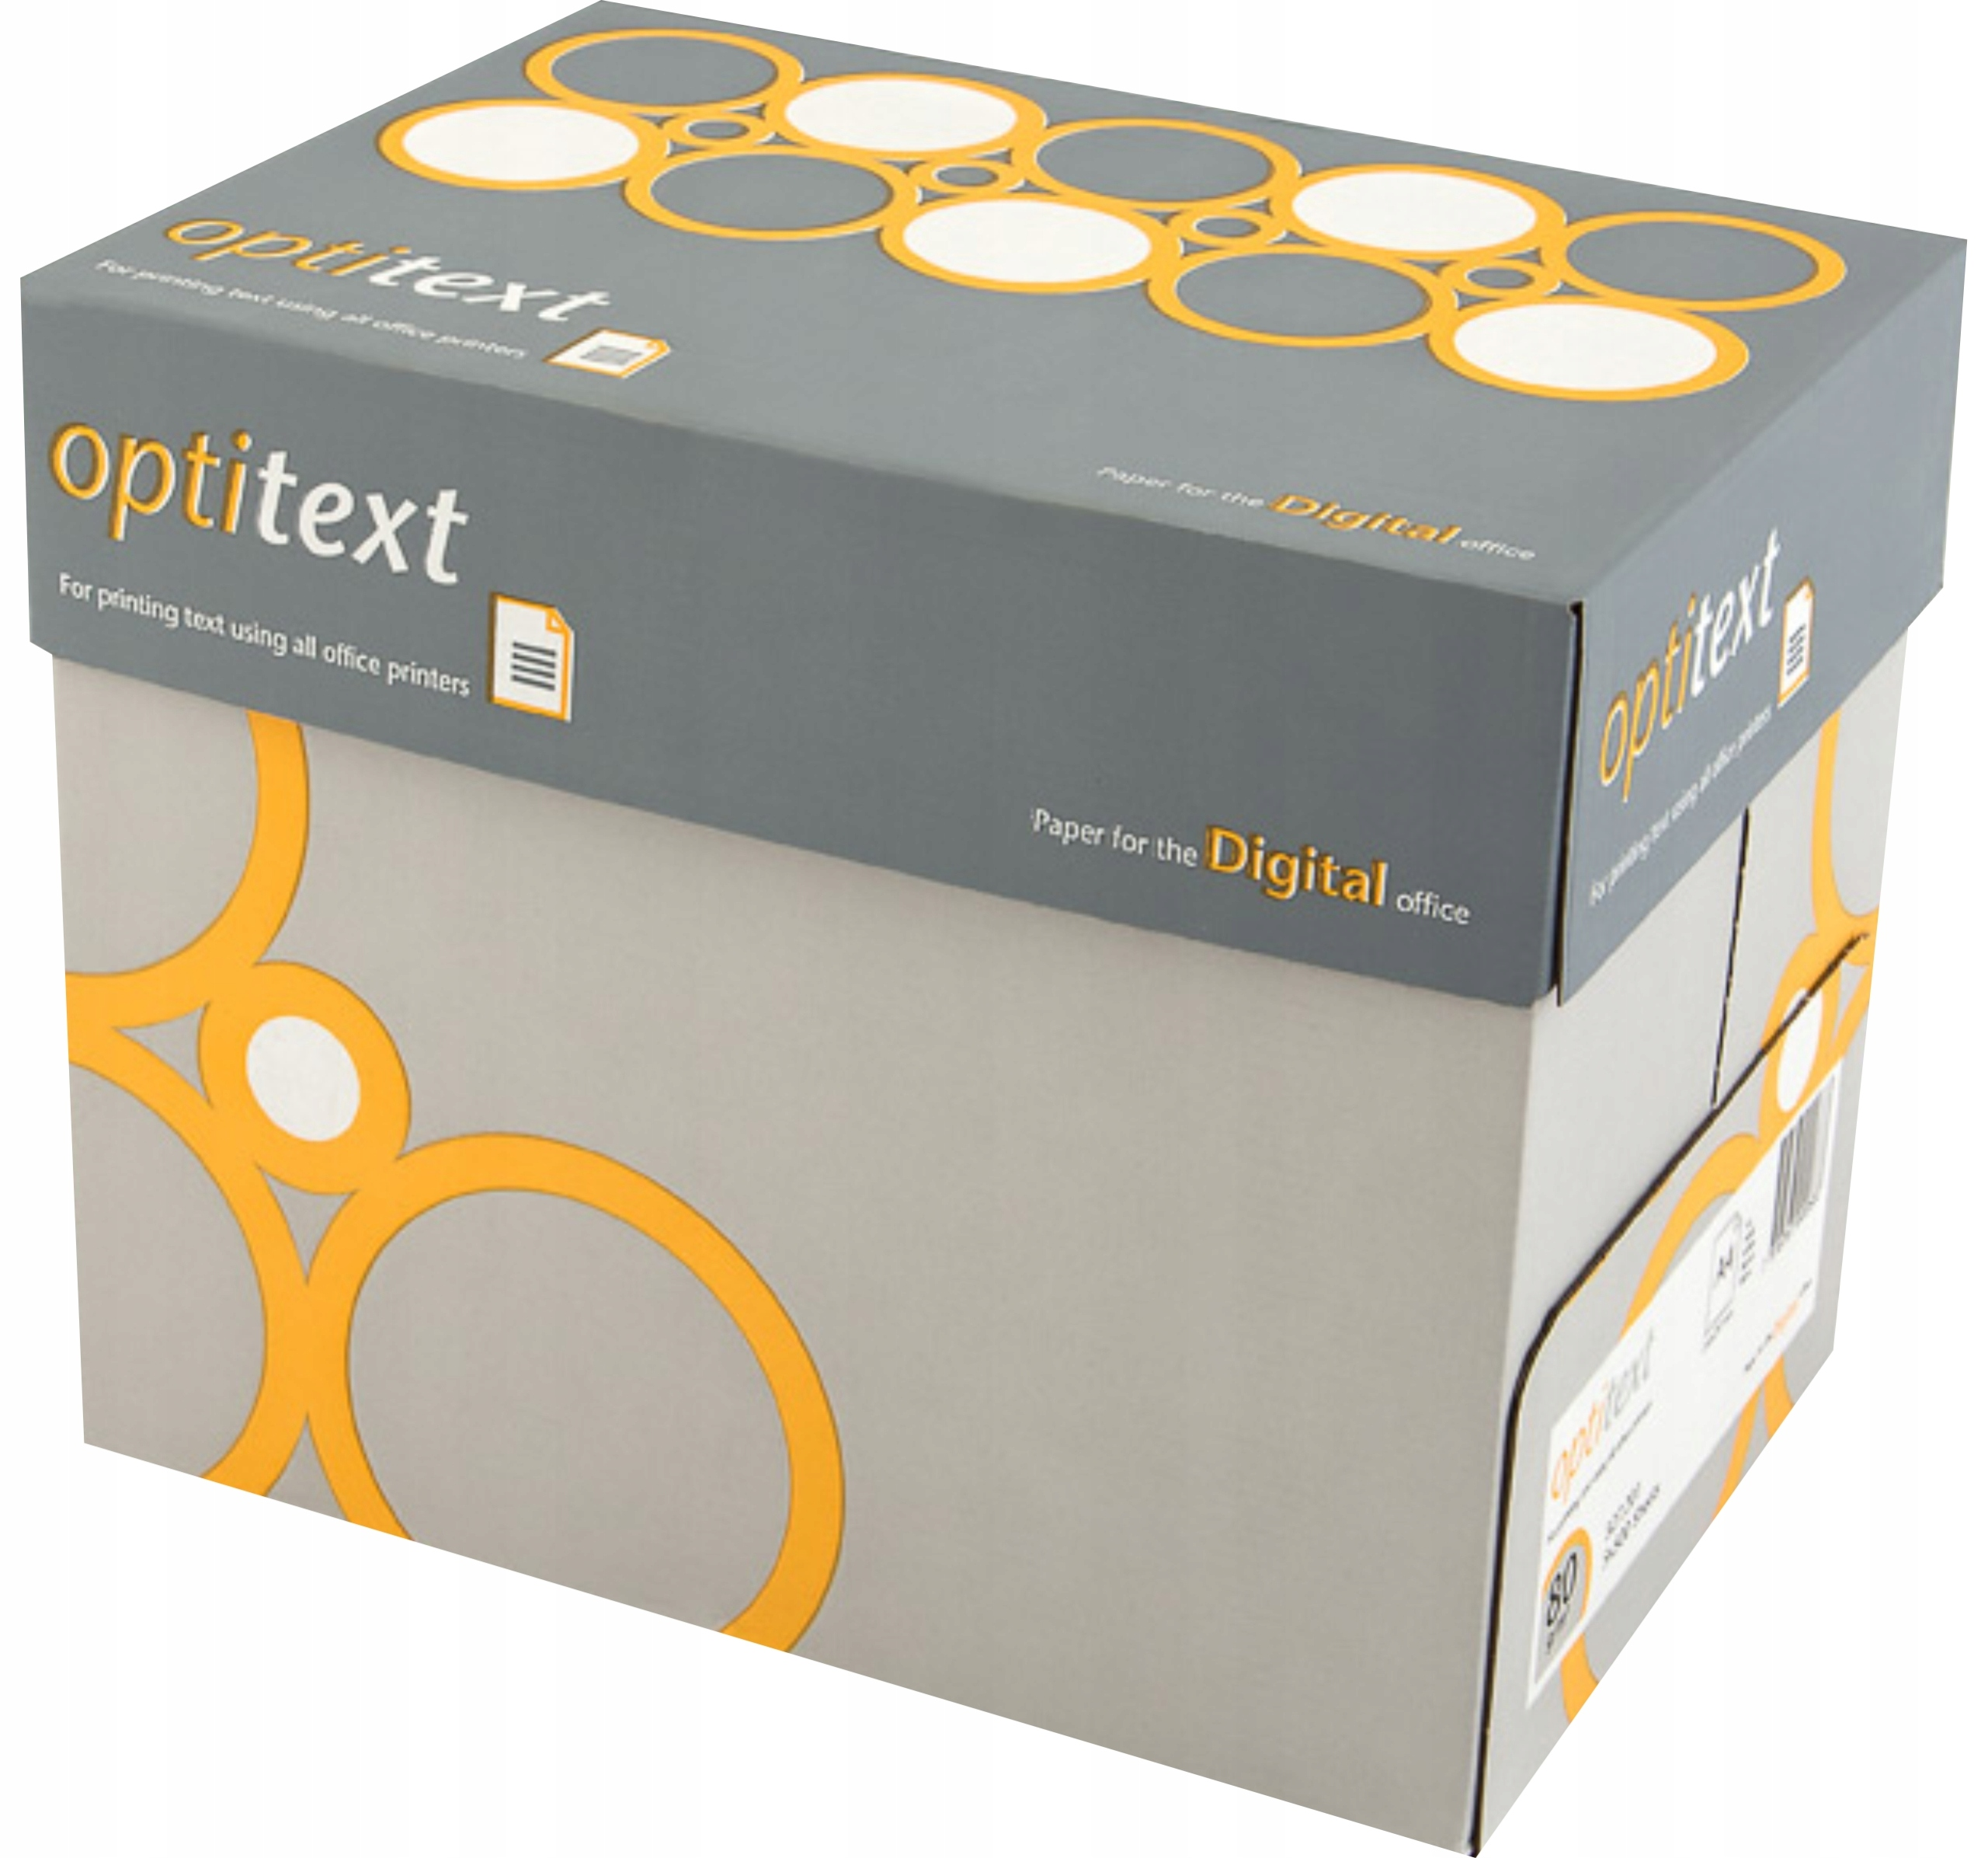 Item Paper copier white printer A4, 80g in the box 5 packs